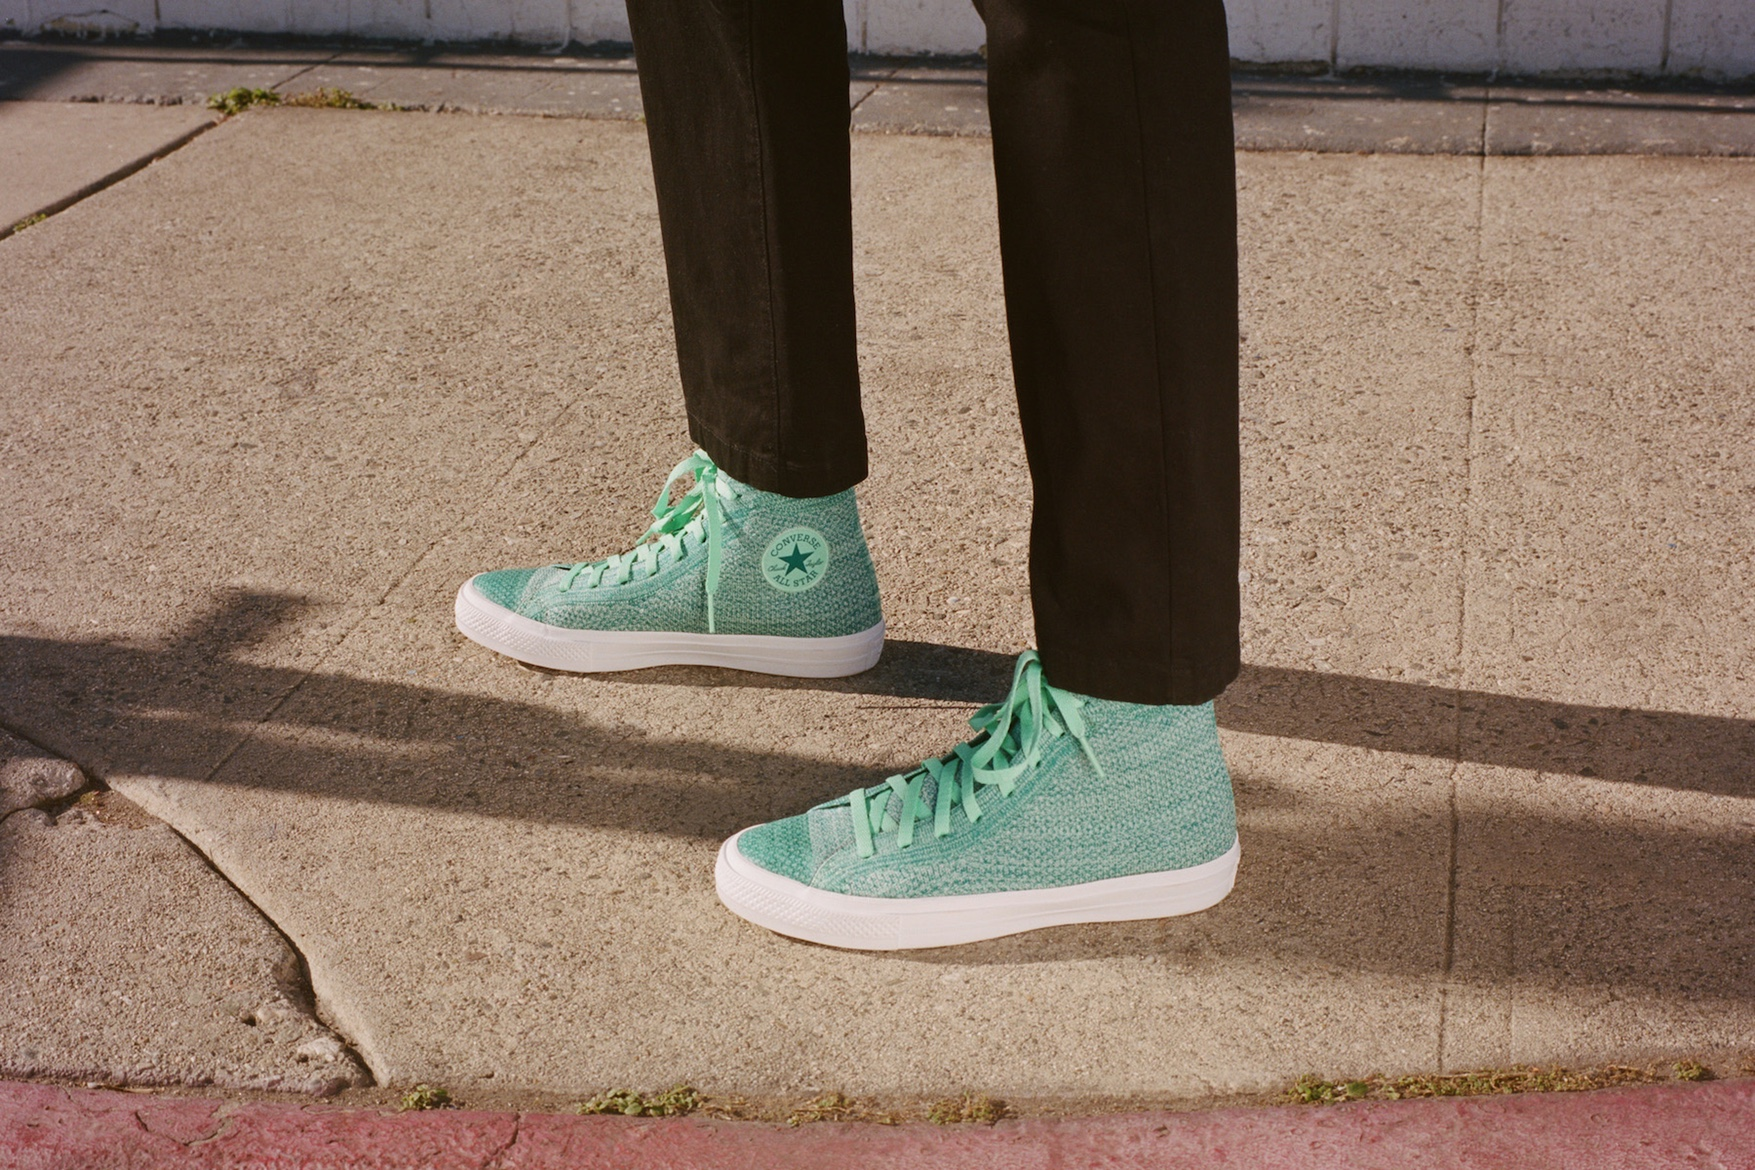 573127f32064 The Converse Chuck Taylor All Star x Nike Flyknit Arrives In Singapore With  Six Colourways